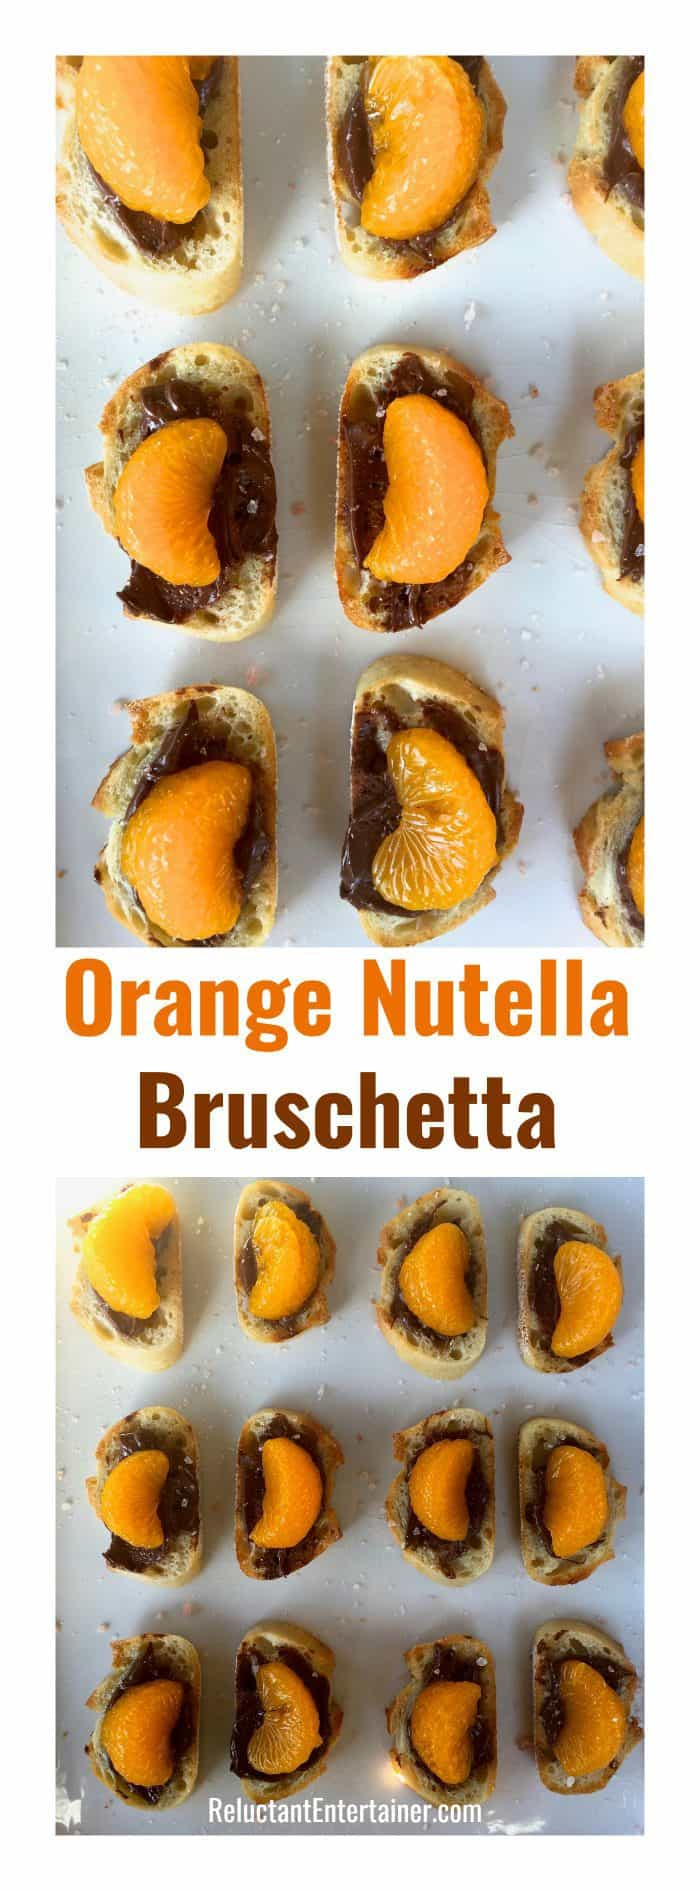 Orange Nutella Bruschetta